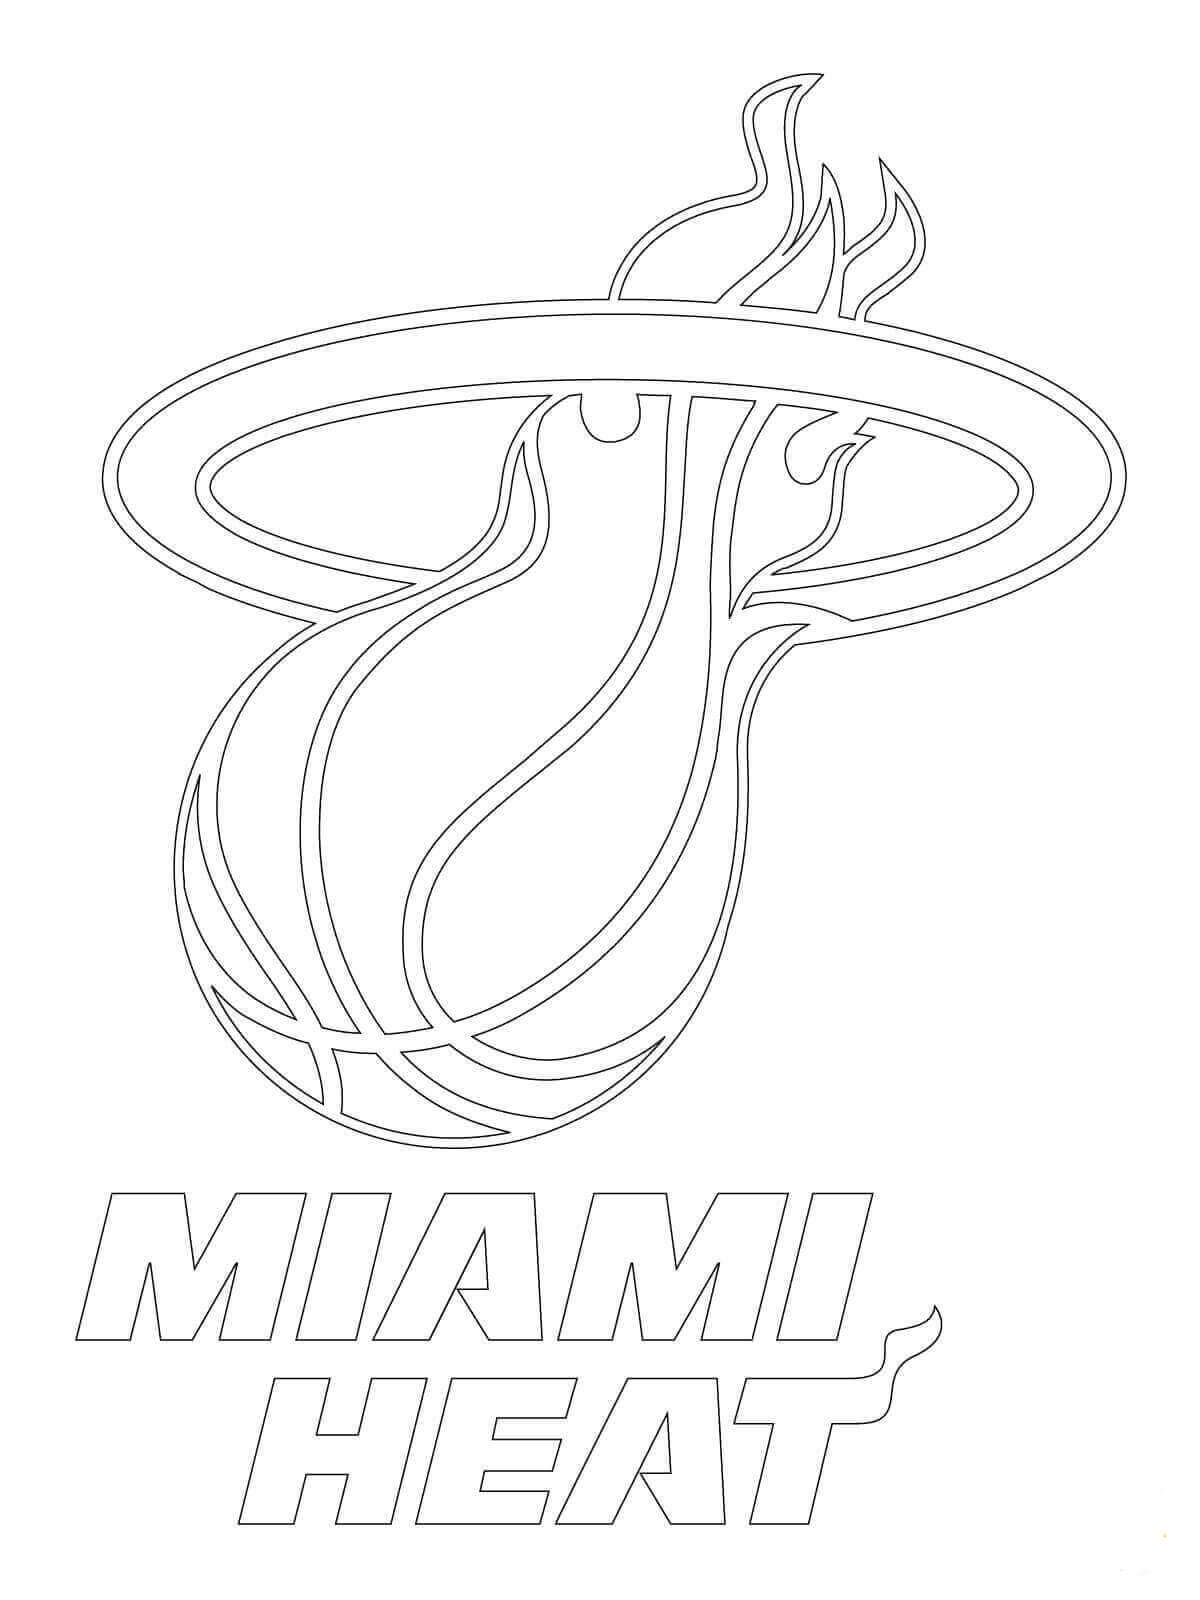 nba jerseys coloring pages - photo#35